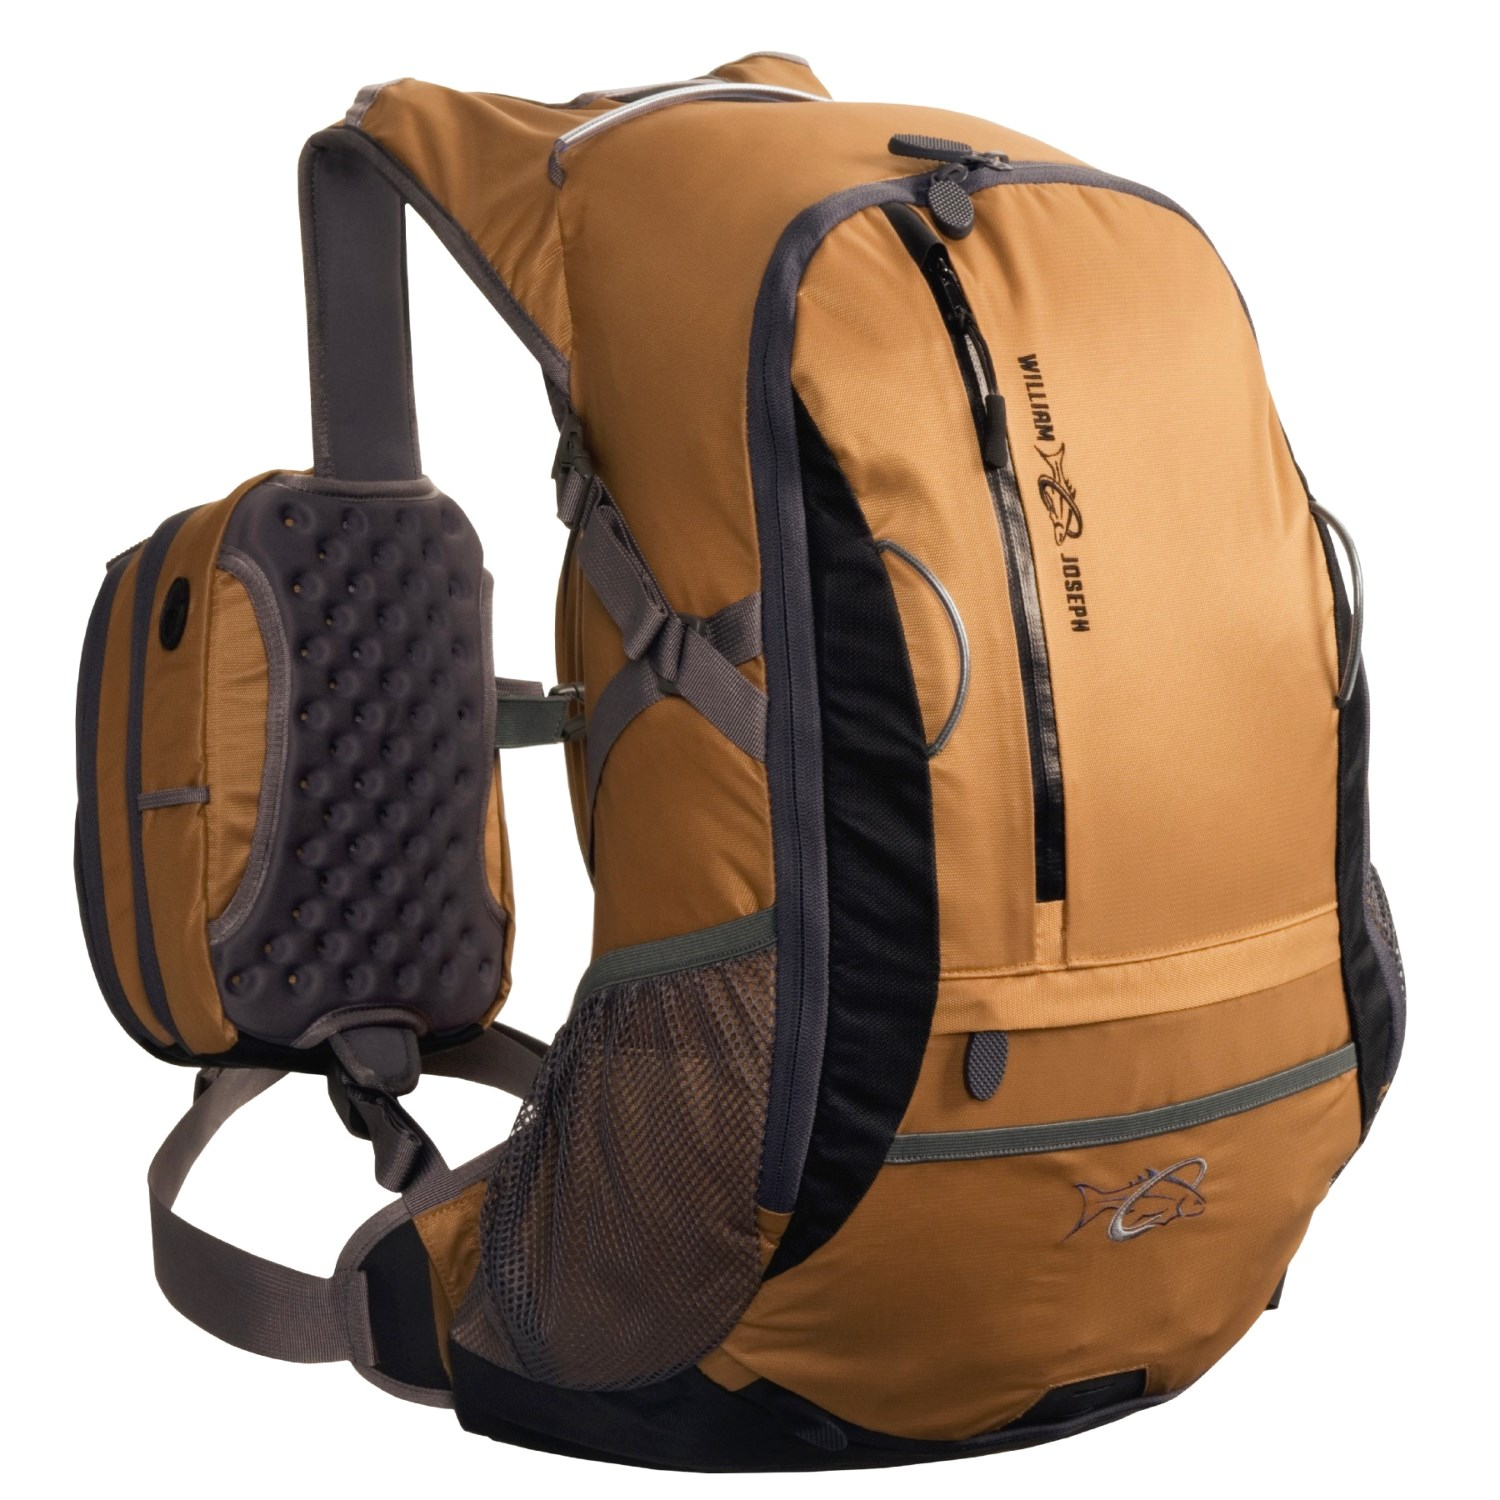 William joseph escape fly fishing backpack with dual chest for Fly fishing backpack